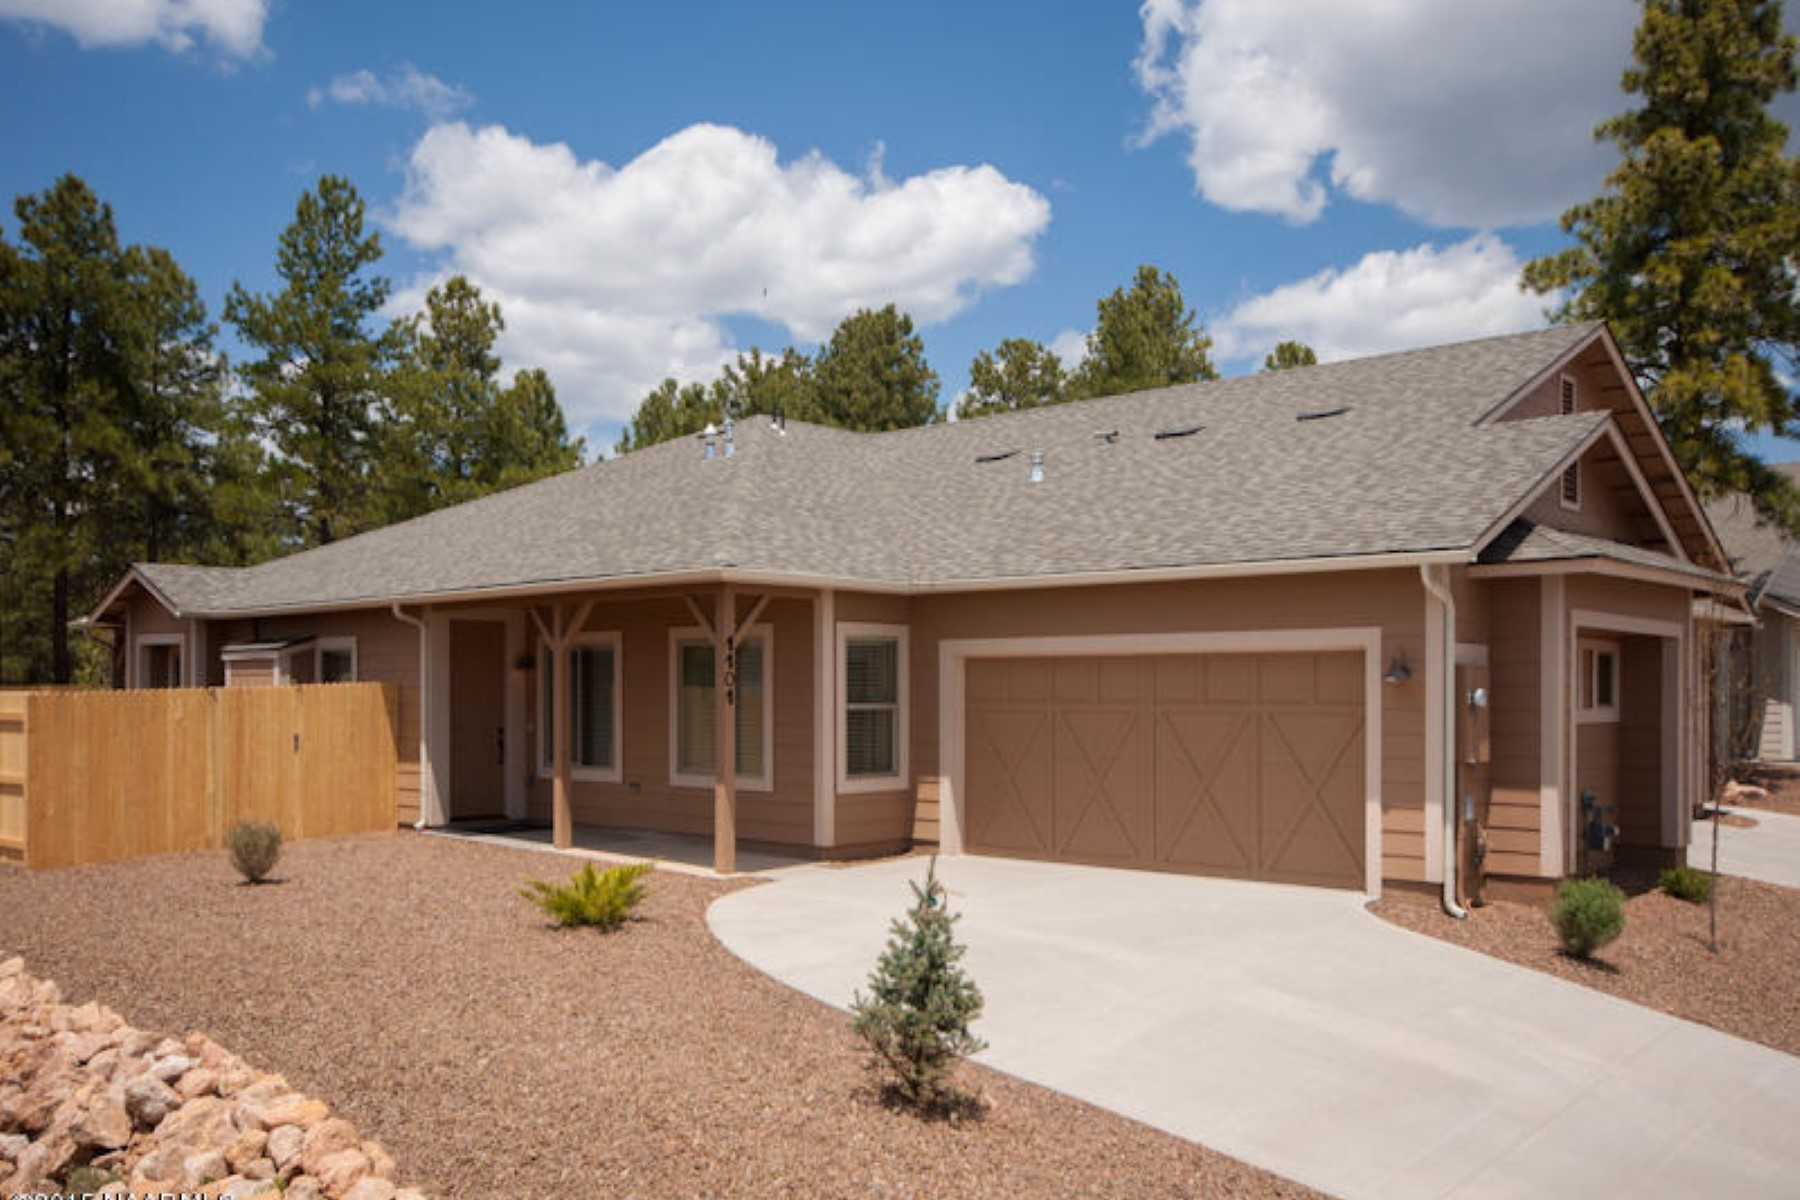 Single Family Home for Sale at Miramonte Homes at Forest Springs Phase II 3000 E Cold Springs TRL Lot 35 Flagstaff, Arizona 86004 United States